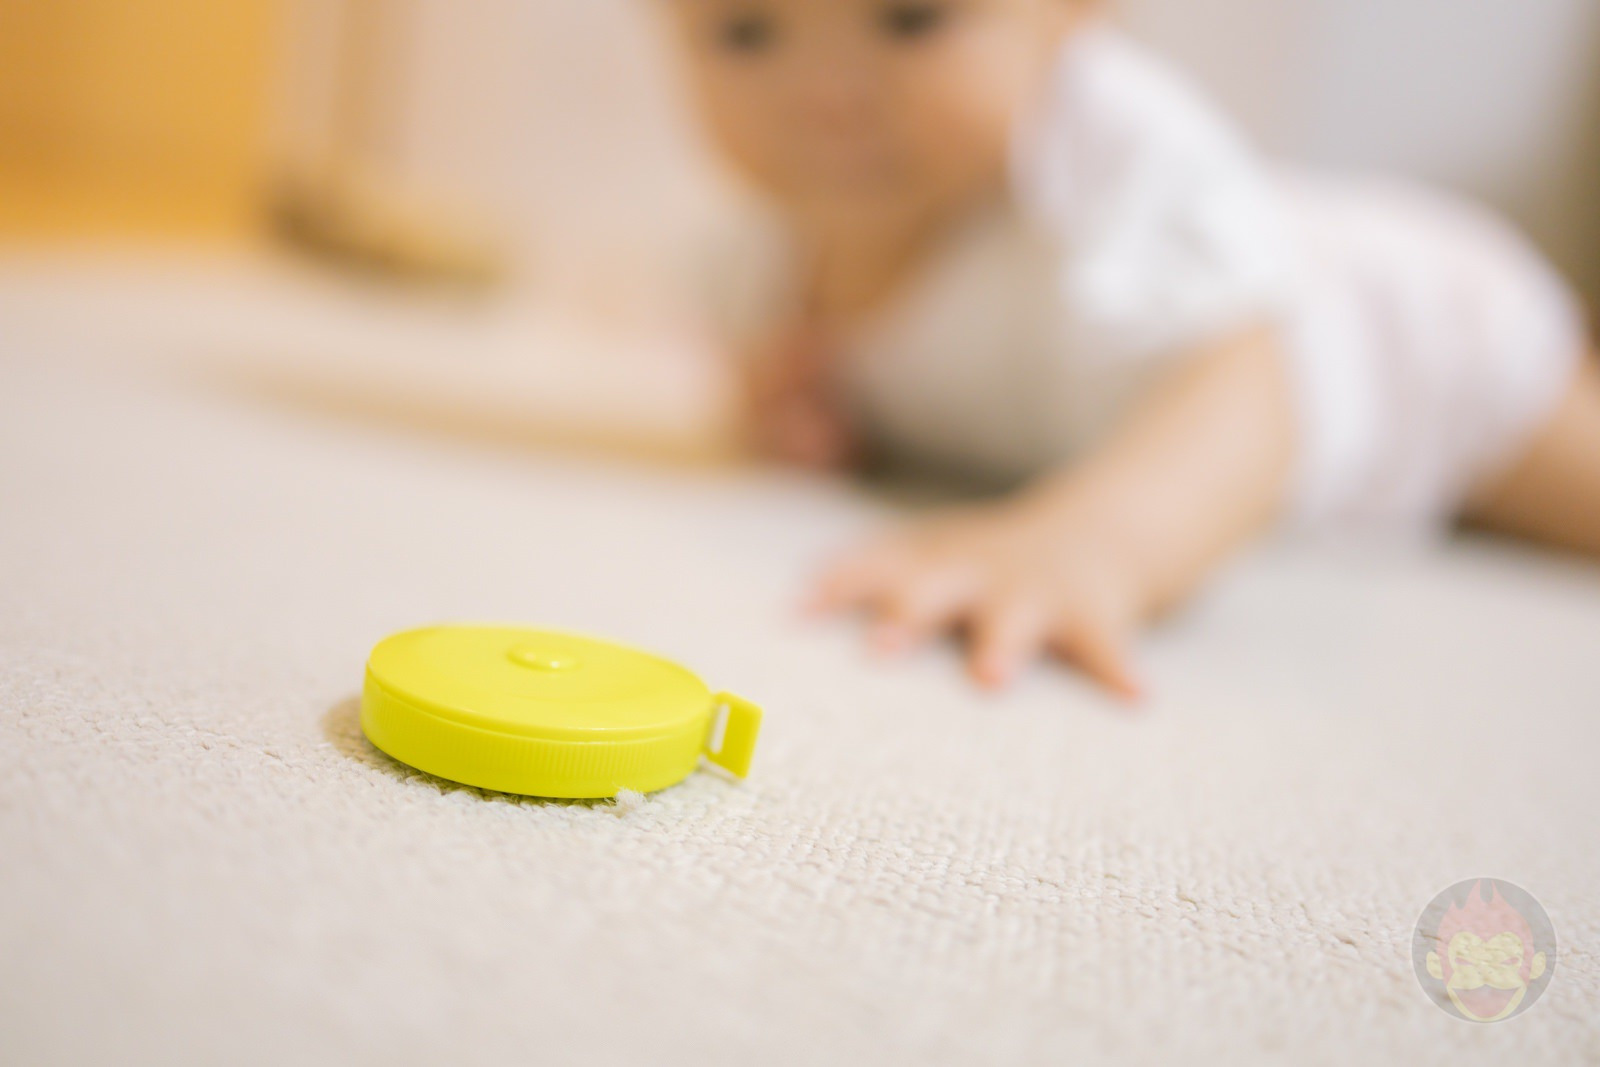 Kids-Love-Measuring-Tape-01.jpg